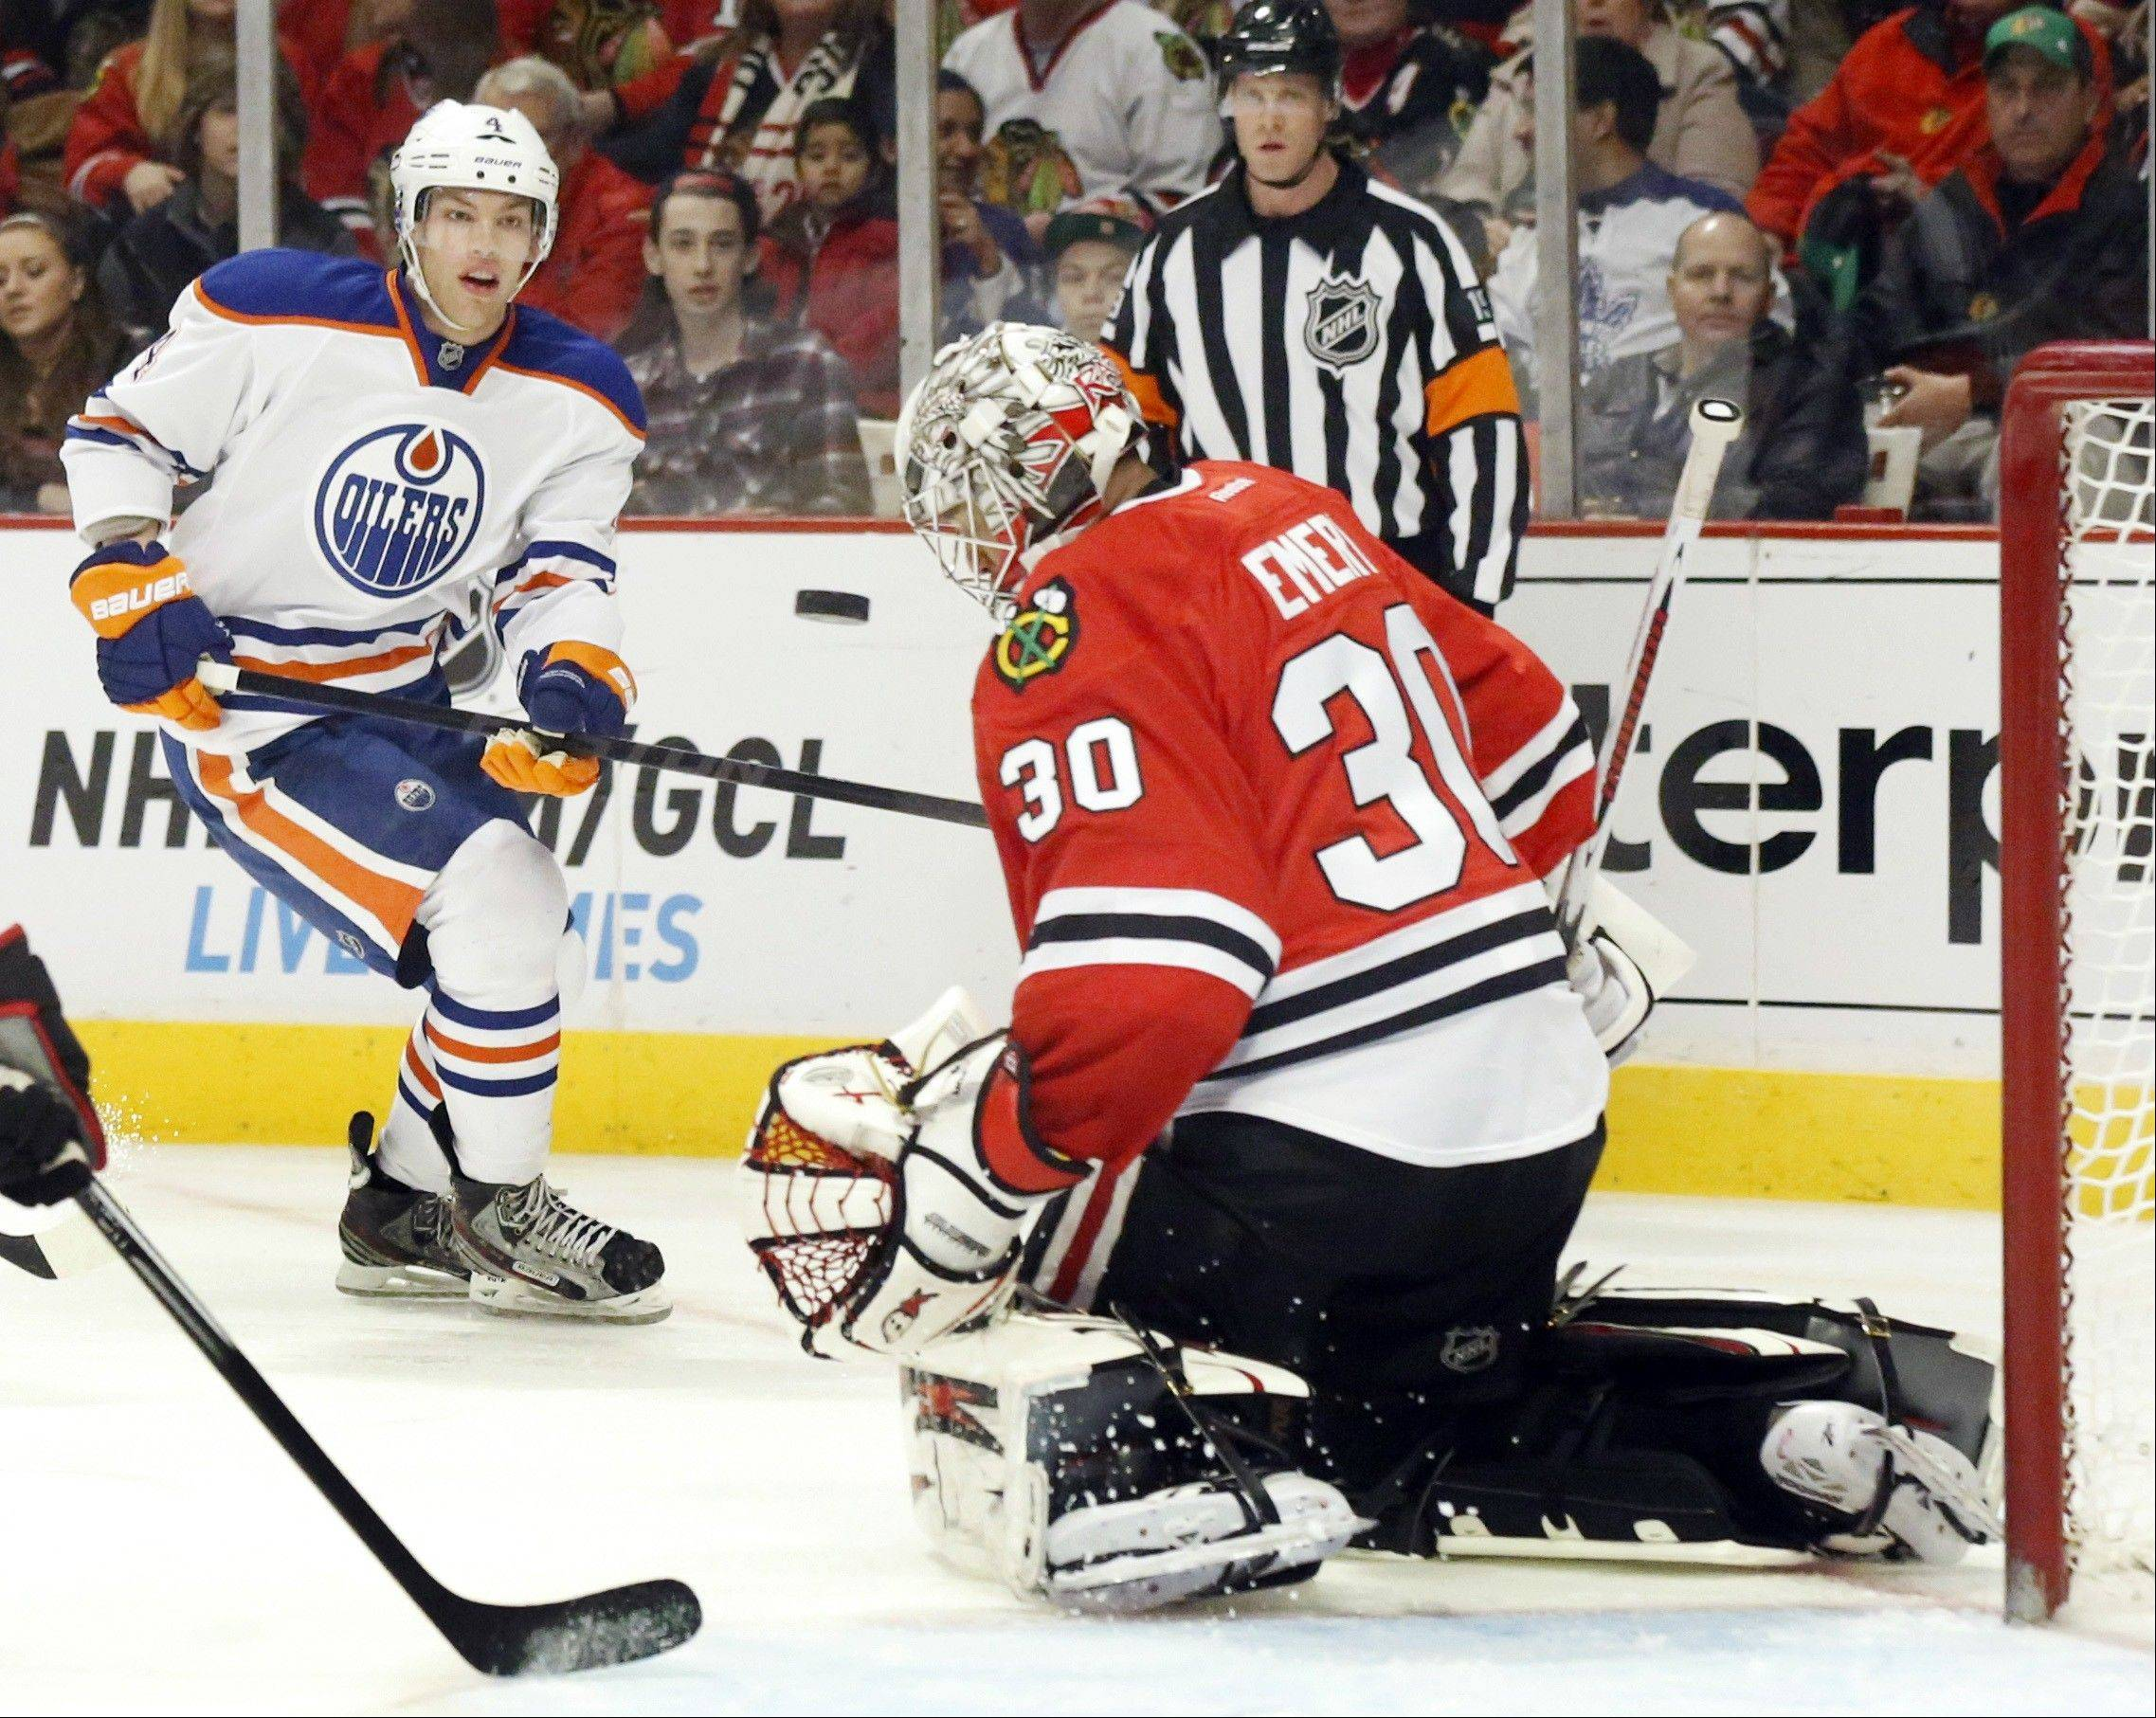 ASSOCIATED PRESS Chicago Blackhawks goalie Ray Emery makes a chest save on a shot by Edmonton Oilers left wing Taylor Hall, background, during the first period.